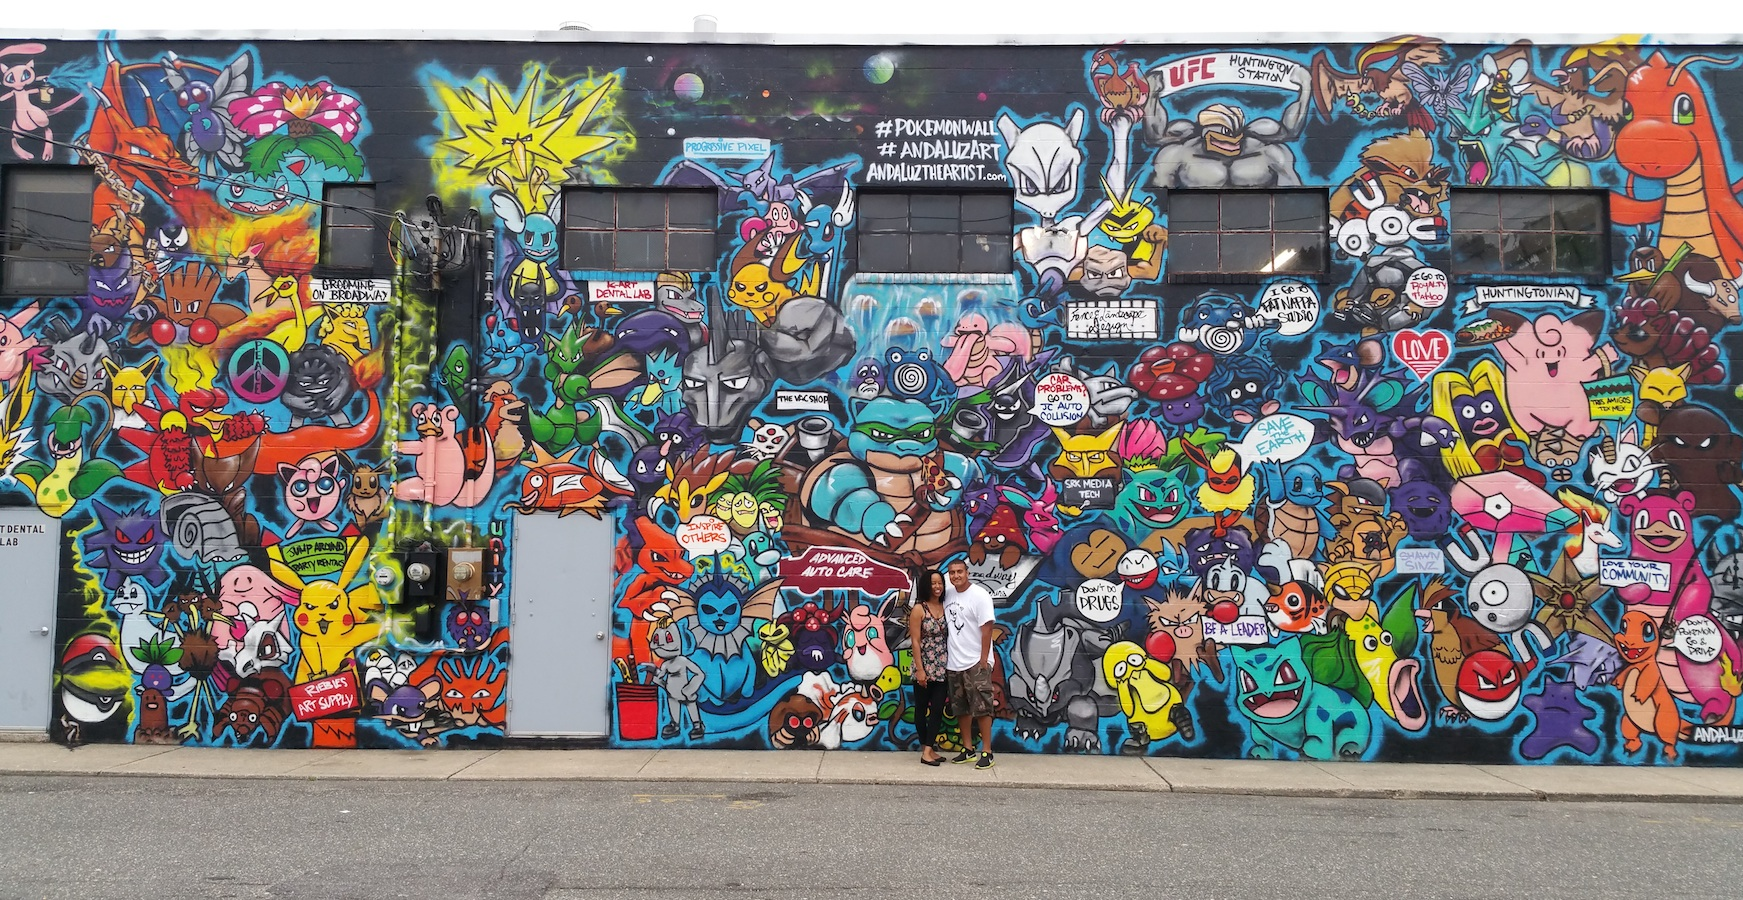 Icymi huntington artist grabs attention of pok mon fans for Creating a mural